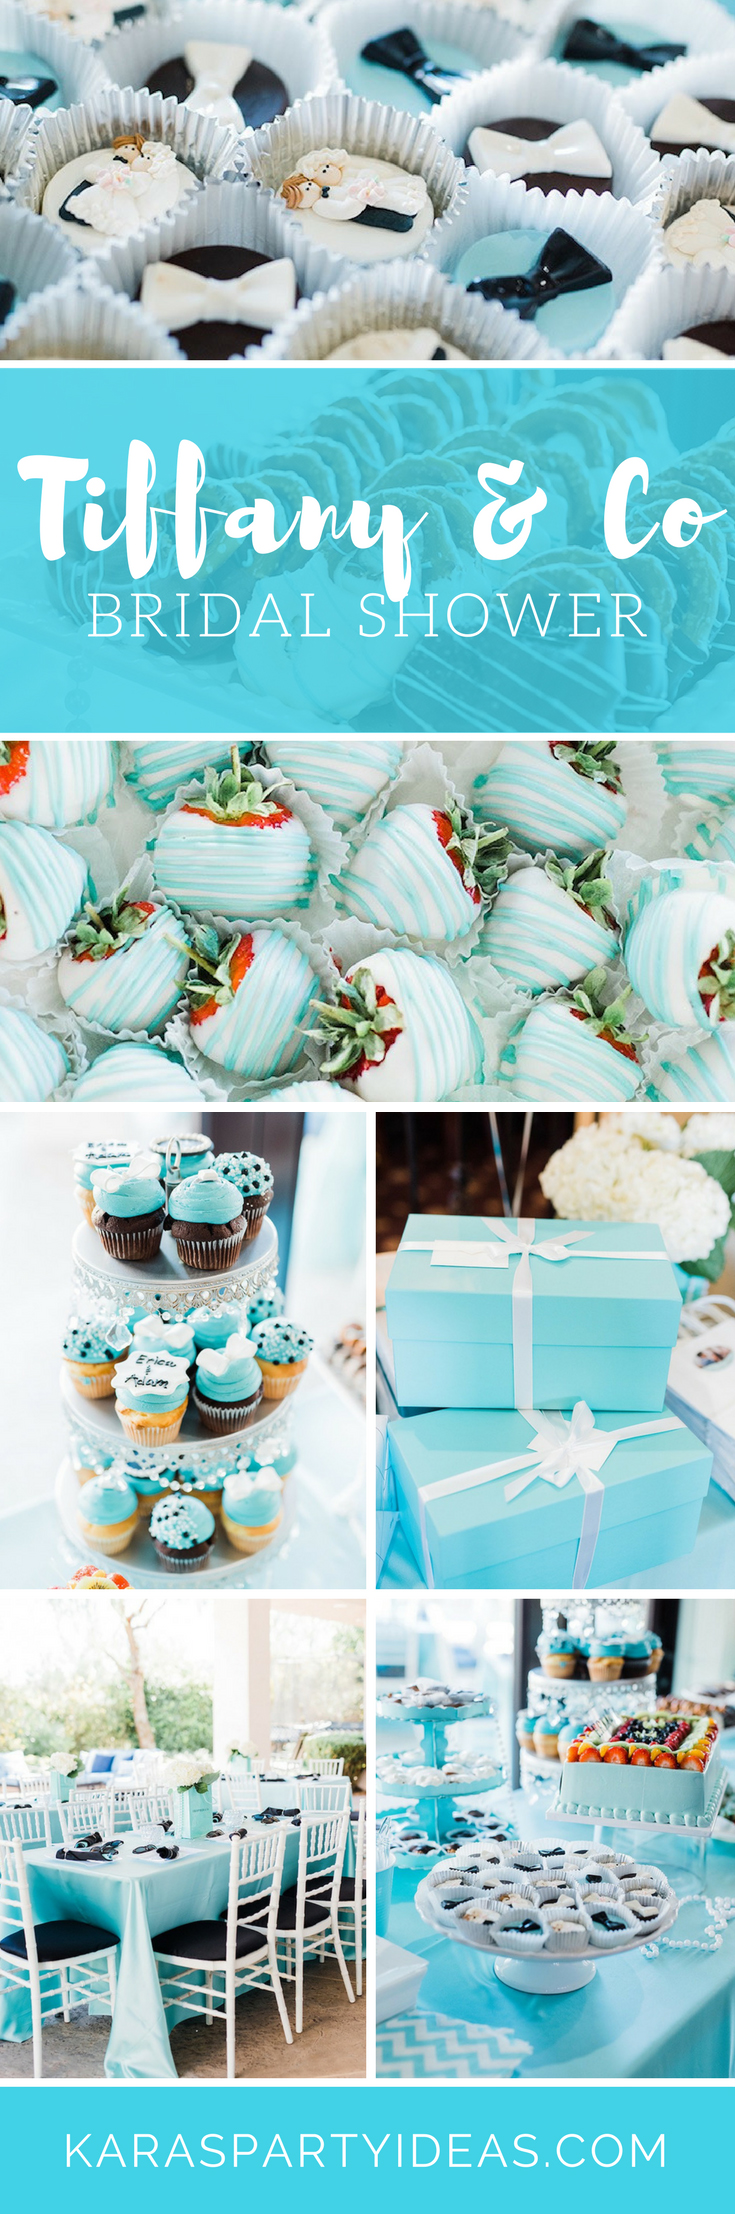 Tiffany Co Bridal Shower via Kara's Party Ideas - KarasPartyIdeas.com